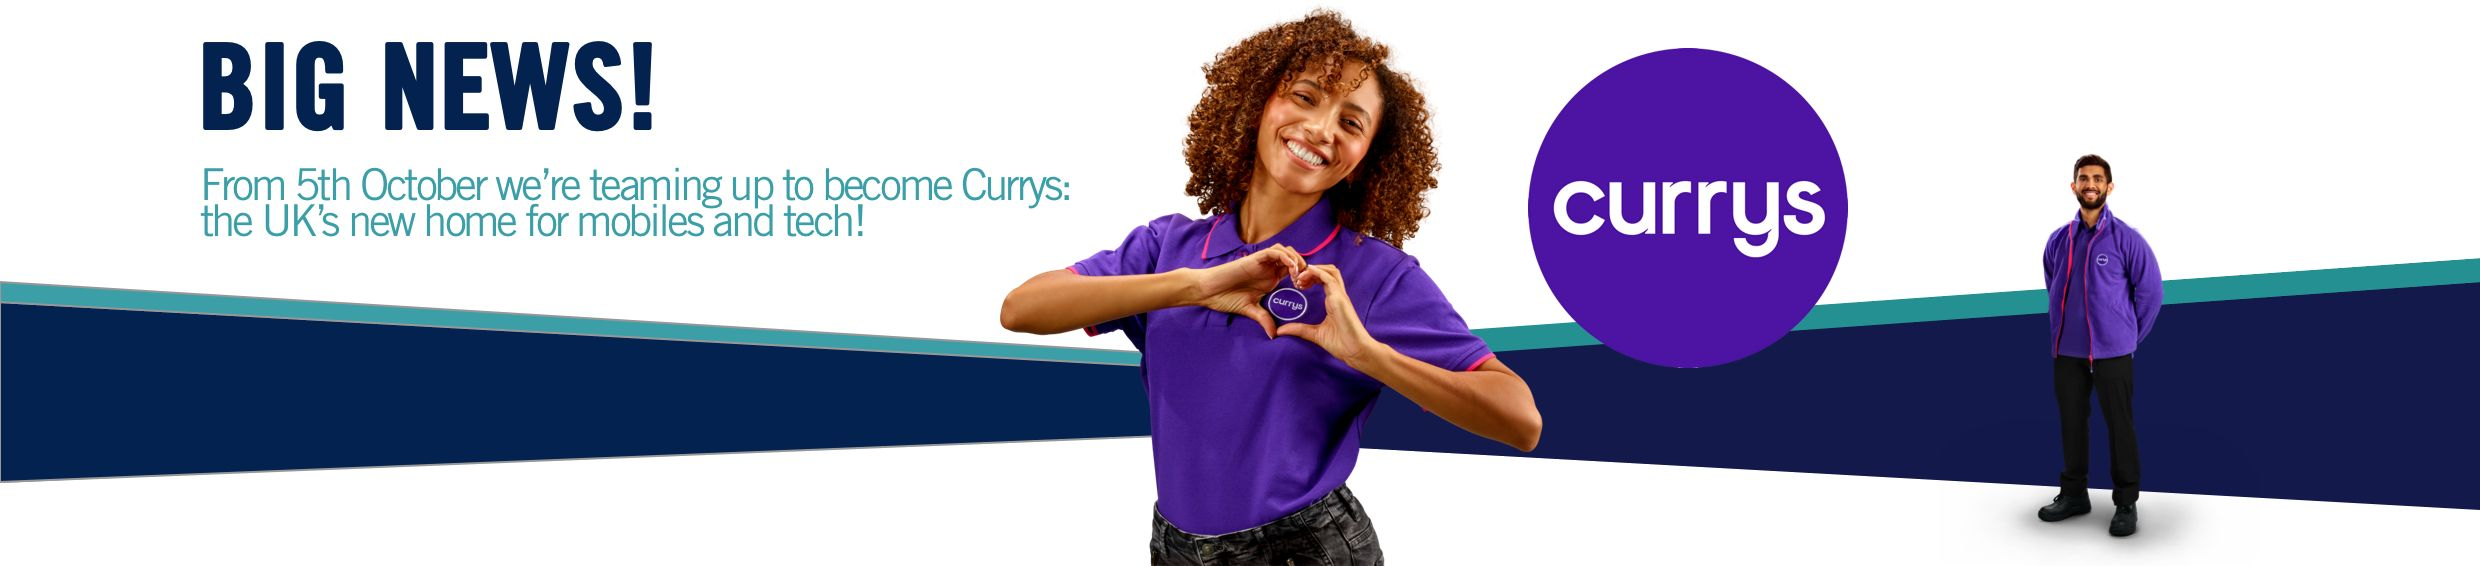 Big news, From 5th October we're teaming up to become Currys: the UK's new home for mobiles and tech!